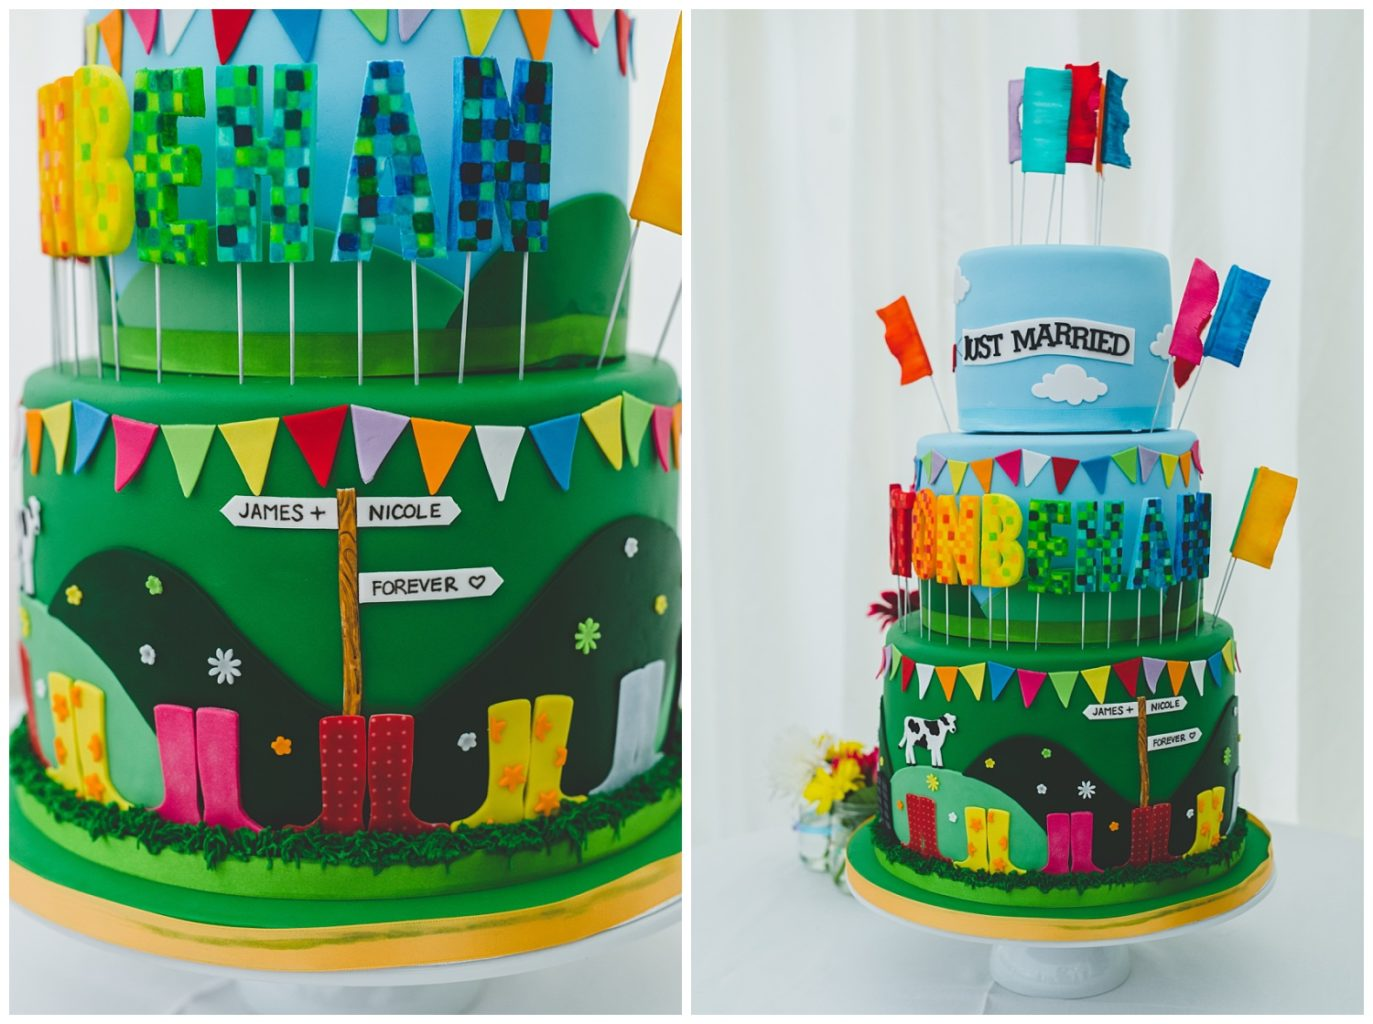 Glastonbury inspired wedding cake